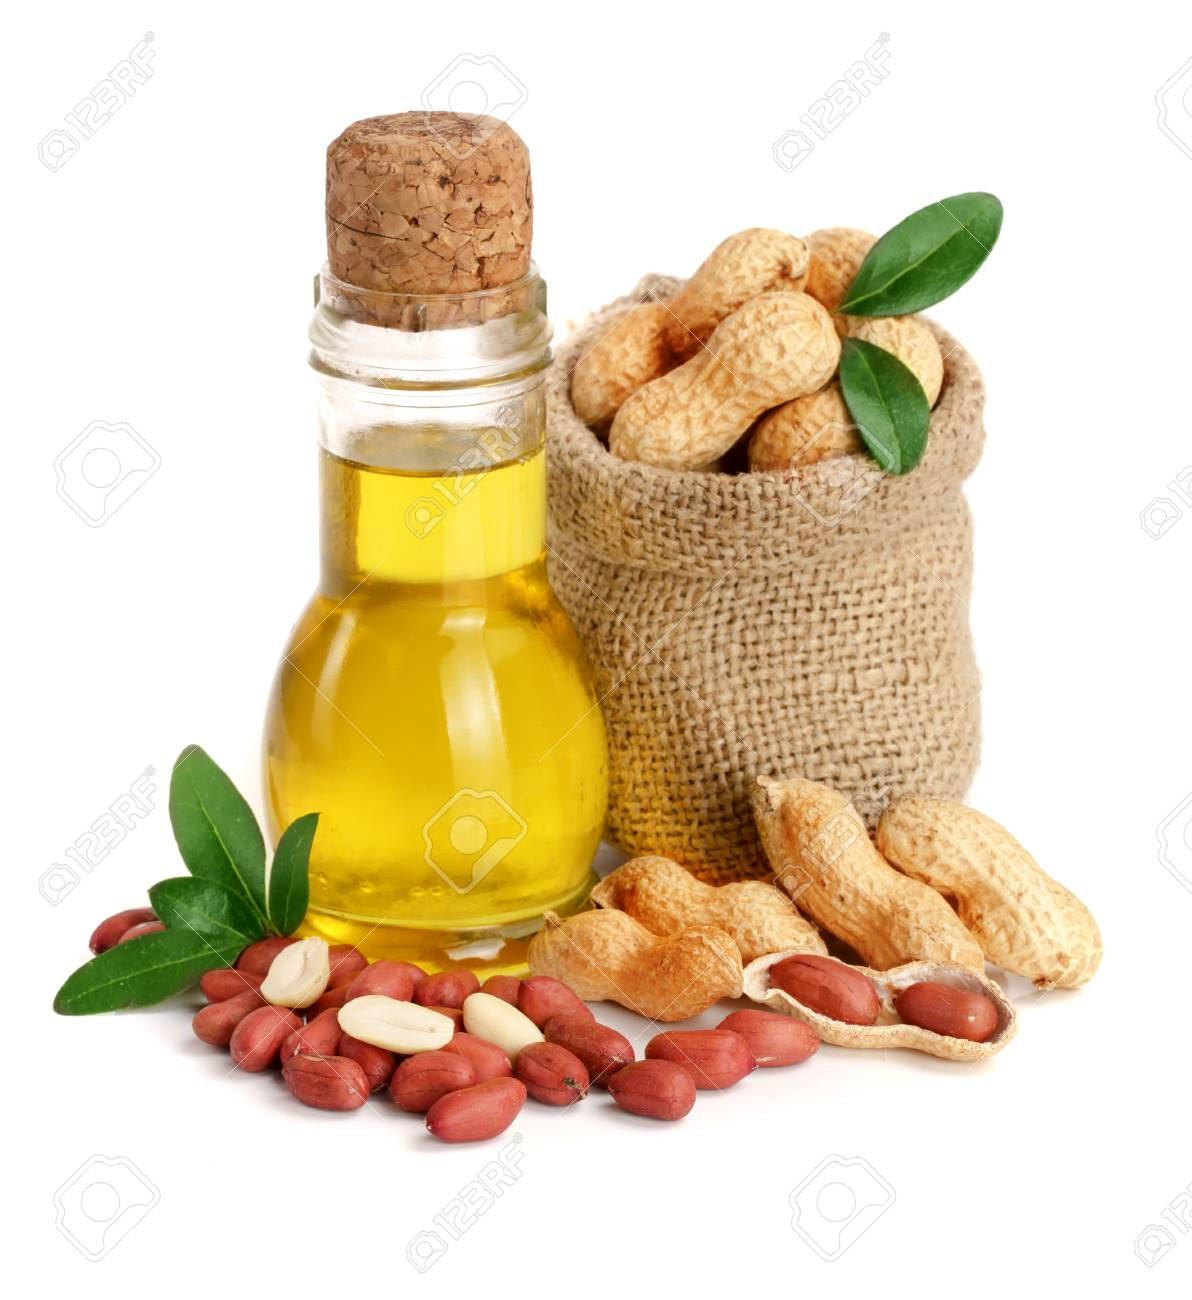 peanut oil in a glass bottle with peanuts in bag. - 88303182